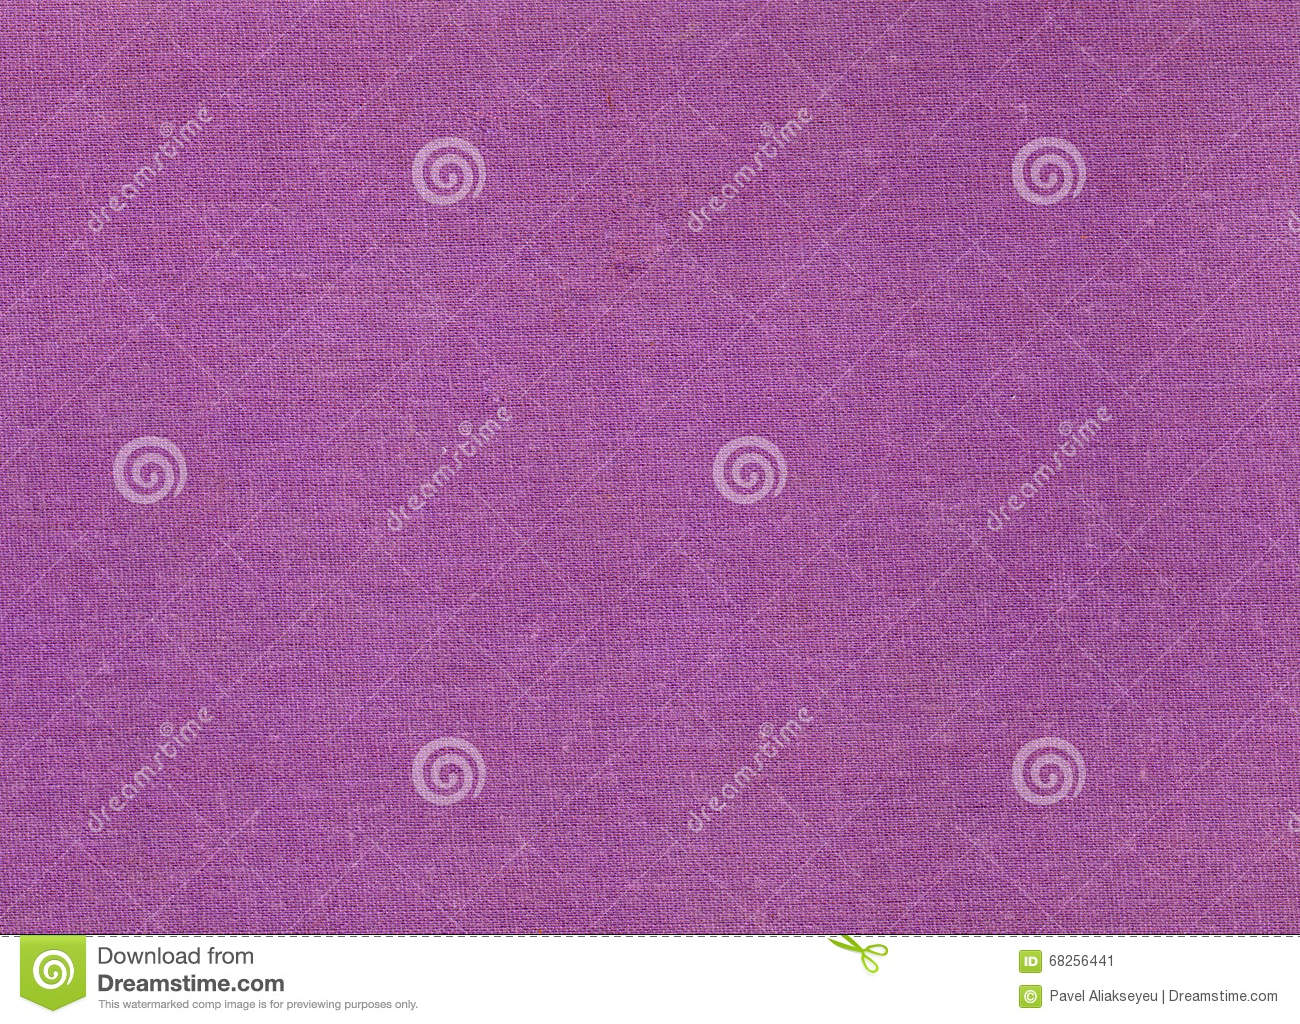 Old Book Cover Material ~ Old violet fabric book cover texture stock image